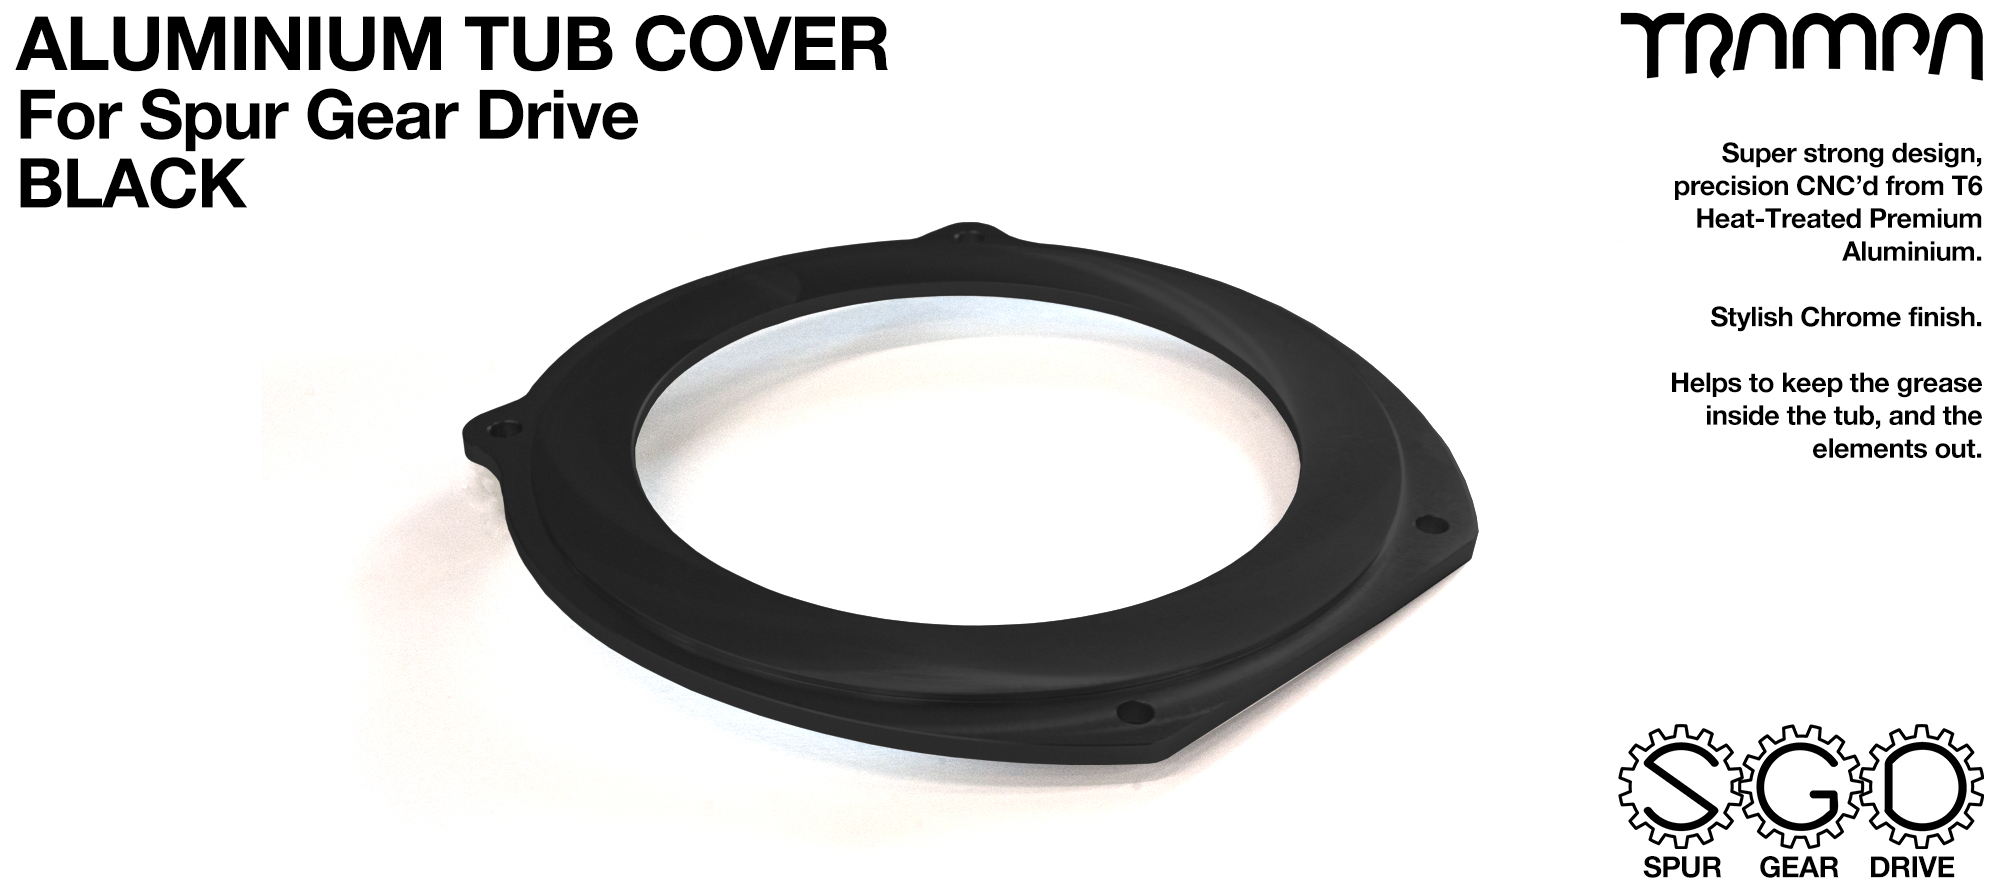 Spur Gear Drive Tub Cover - BLACK